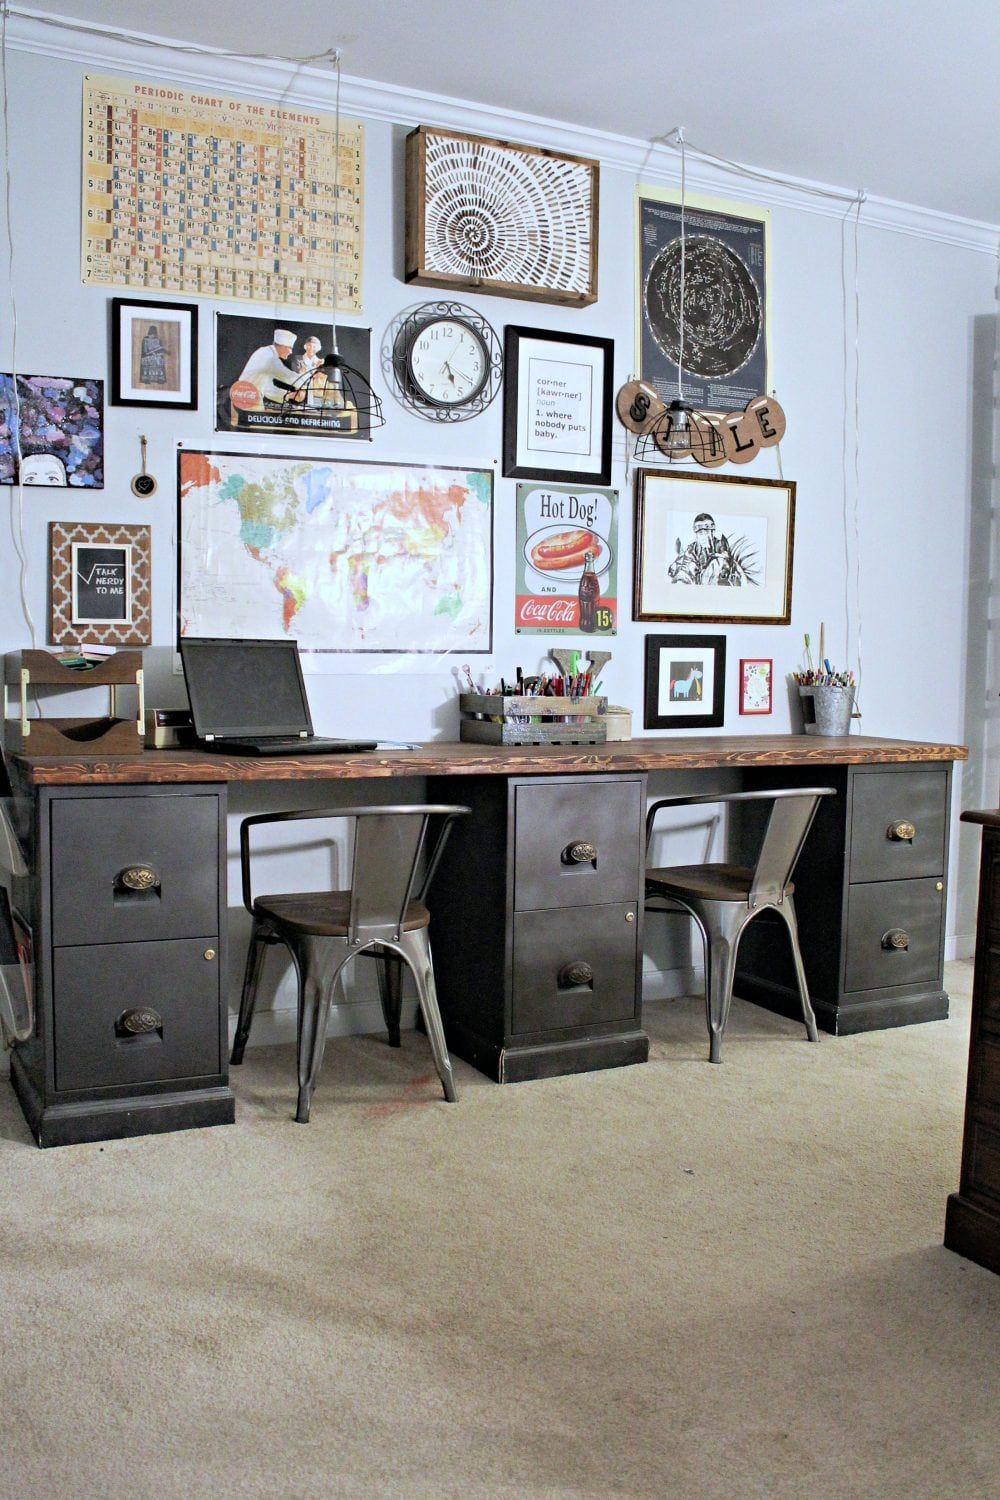 File Cabinet Desk Diy Home Office Diy Desk Repurpose Furniture File Cabinet Desk Diy Diy Office Desk File Cabinet Desk